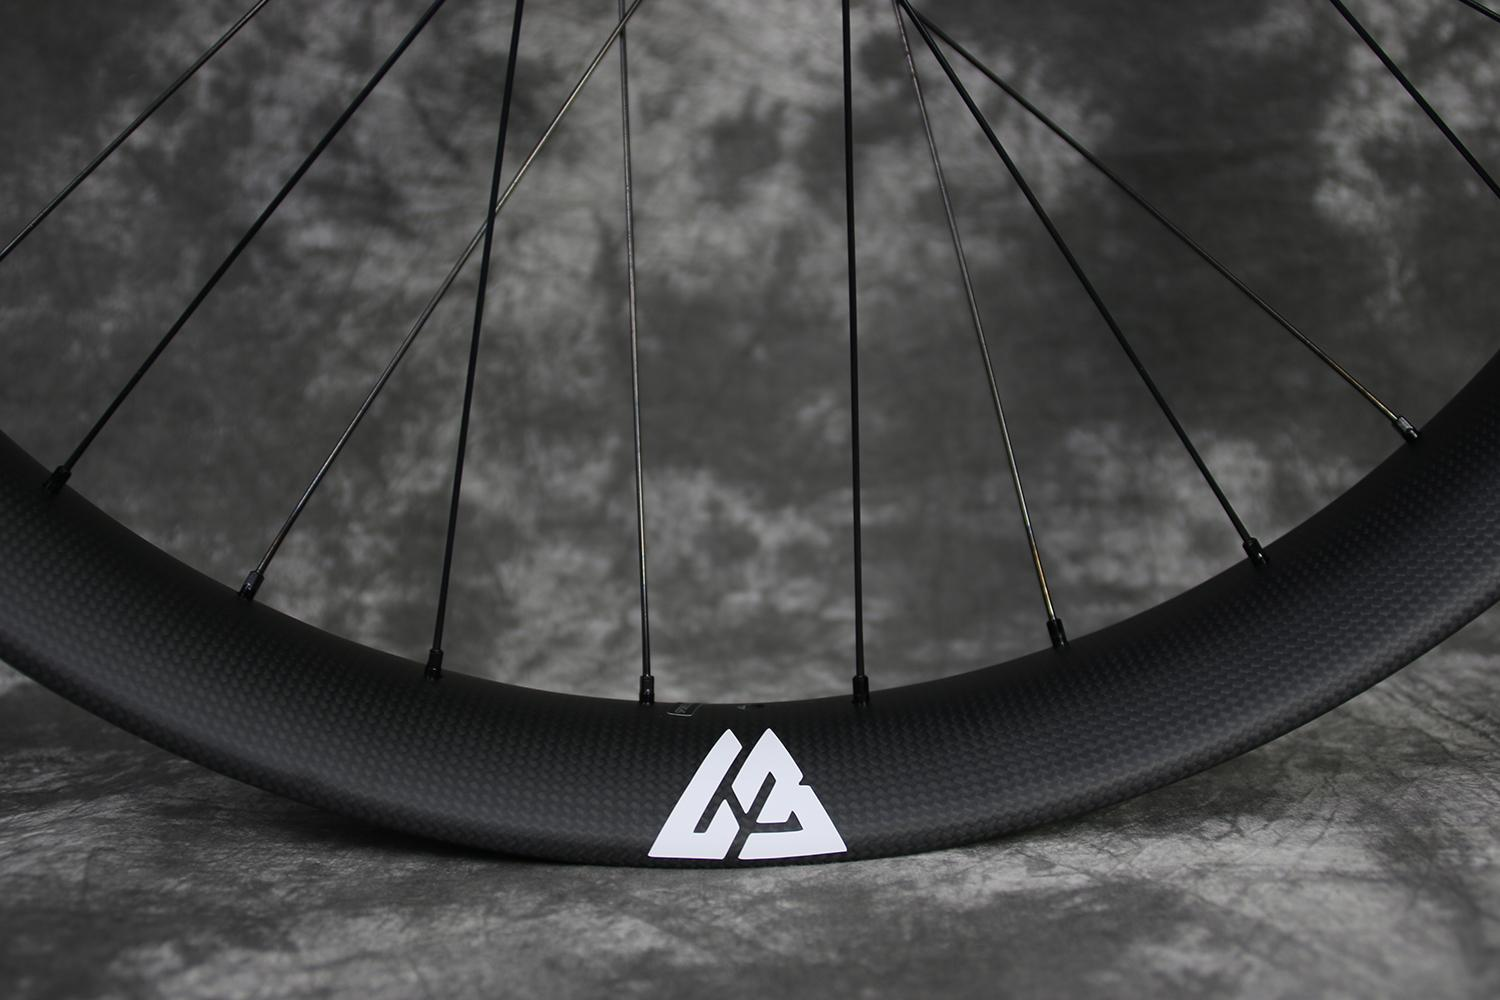 matte-finish-3k-weave-carbon-fatbike-rim-with-white-valve-decal